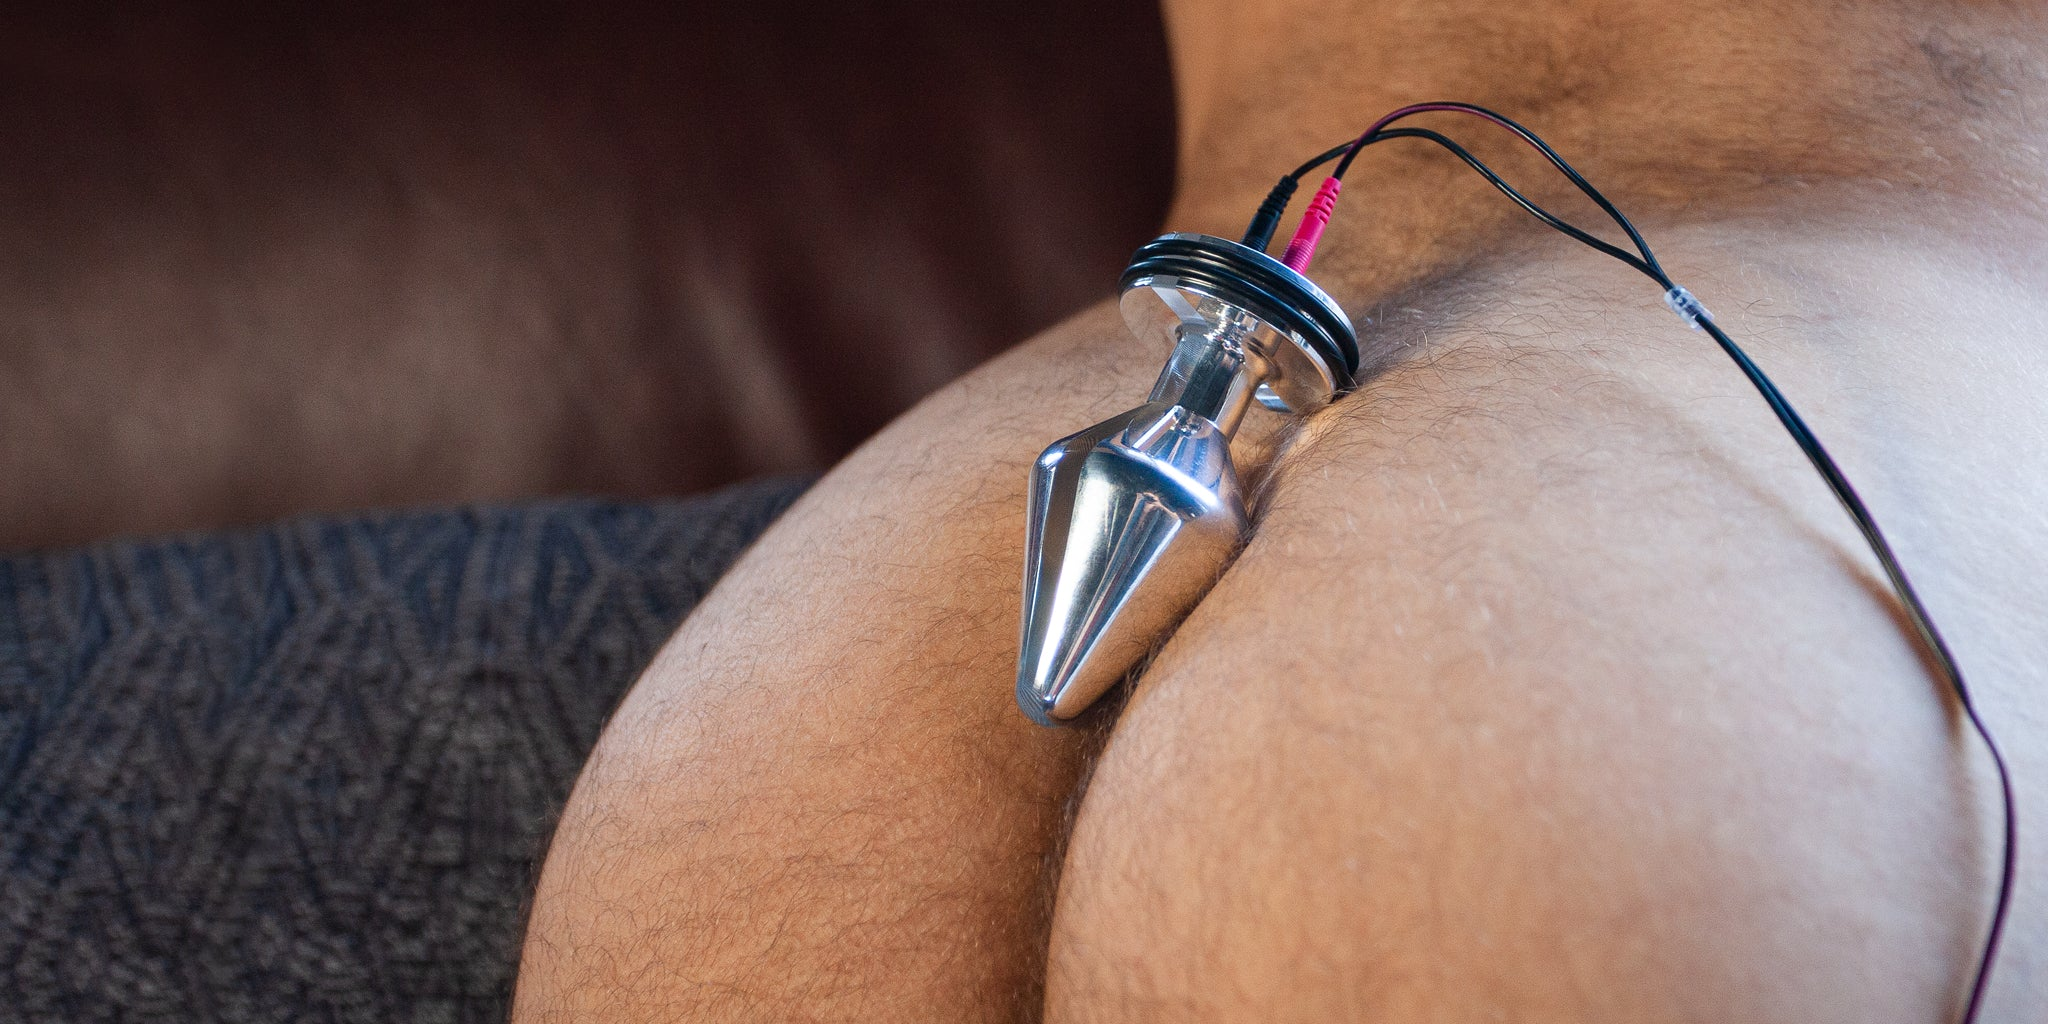 Male Stockroom Anal Toys & Gags Sale: Up to 30% Off select Butt Plugs, Prostate Massagers, Mouth Gags & More